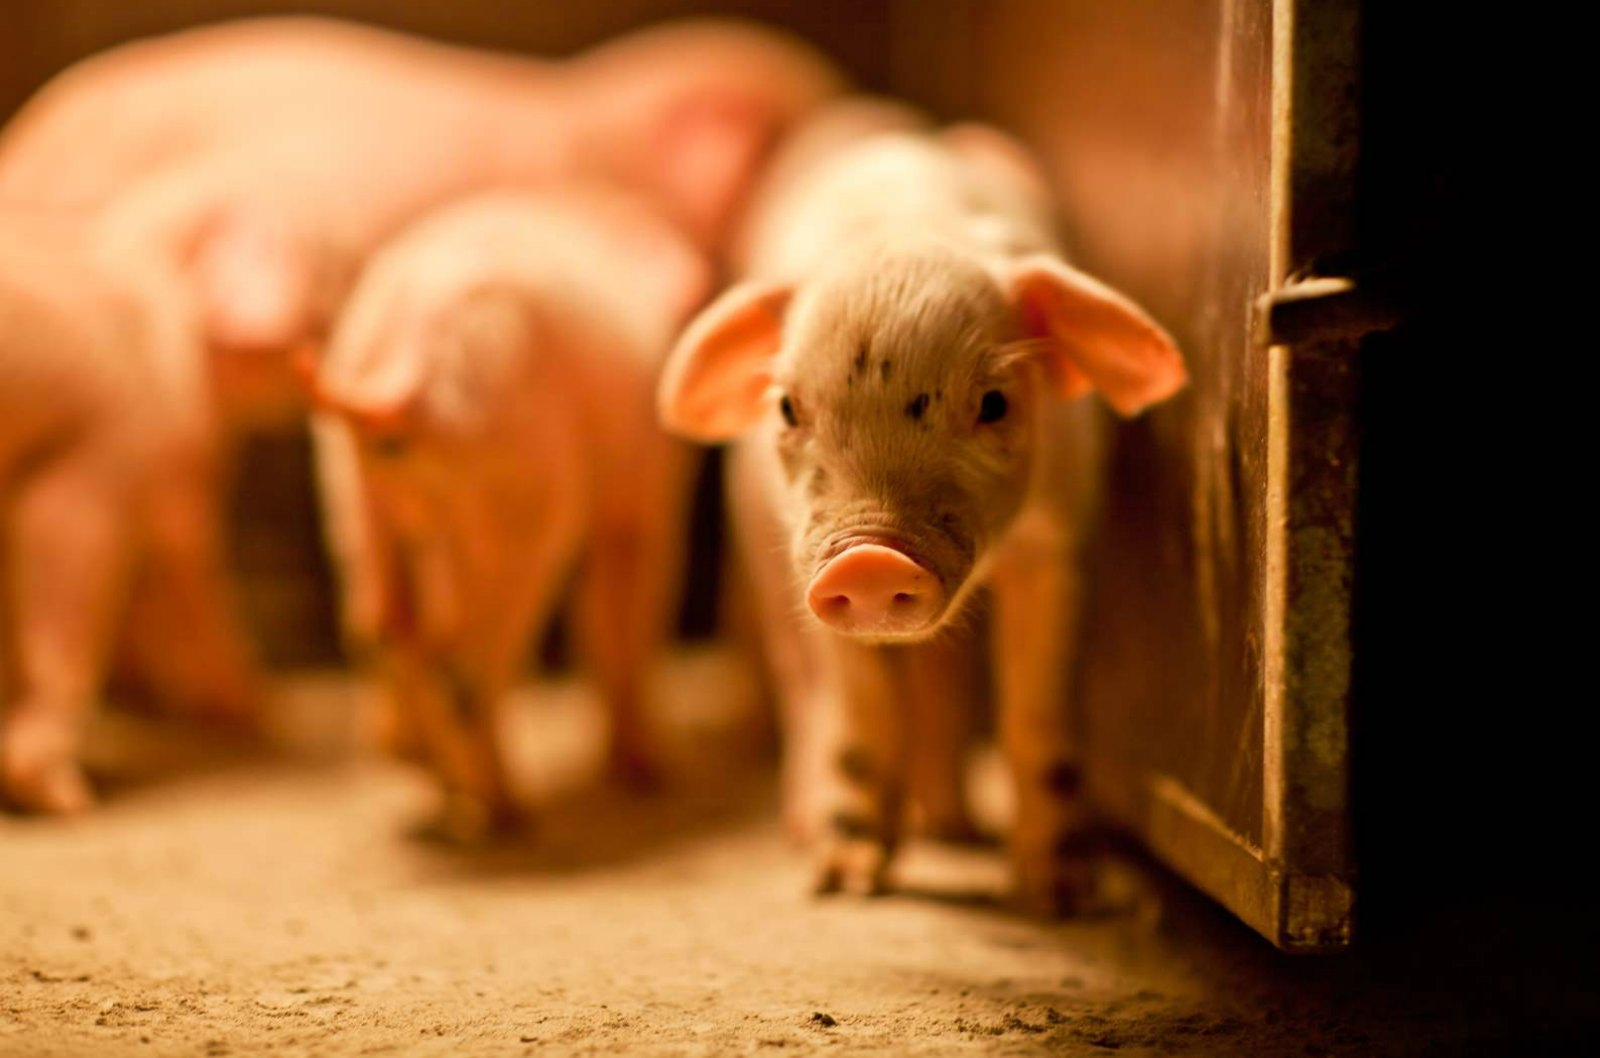 New Oral Vaccine Will Improves Health of Swine Herds Worldwide